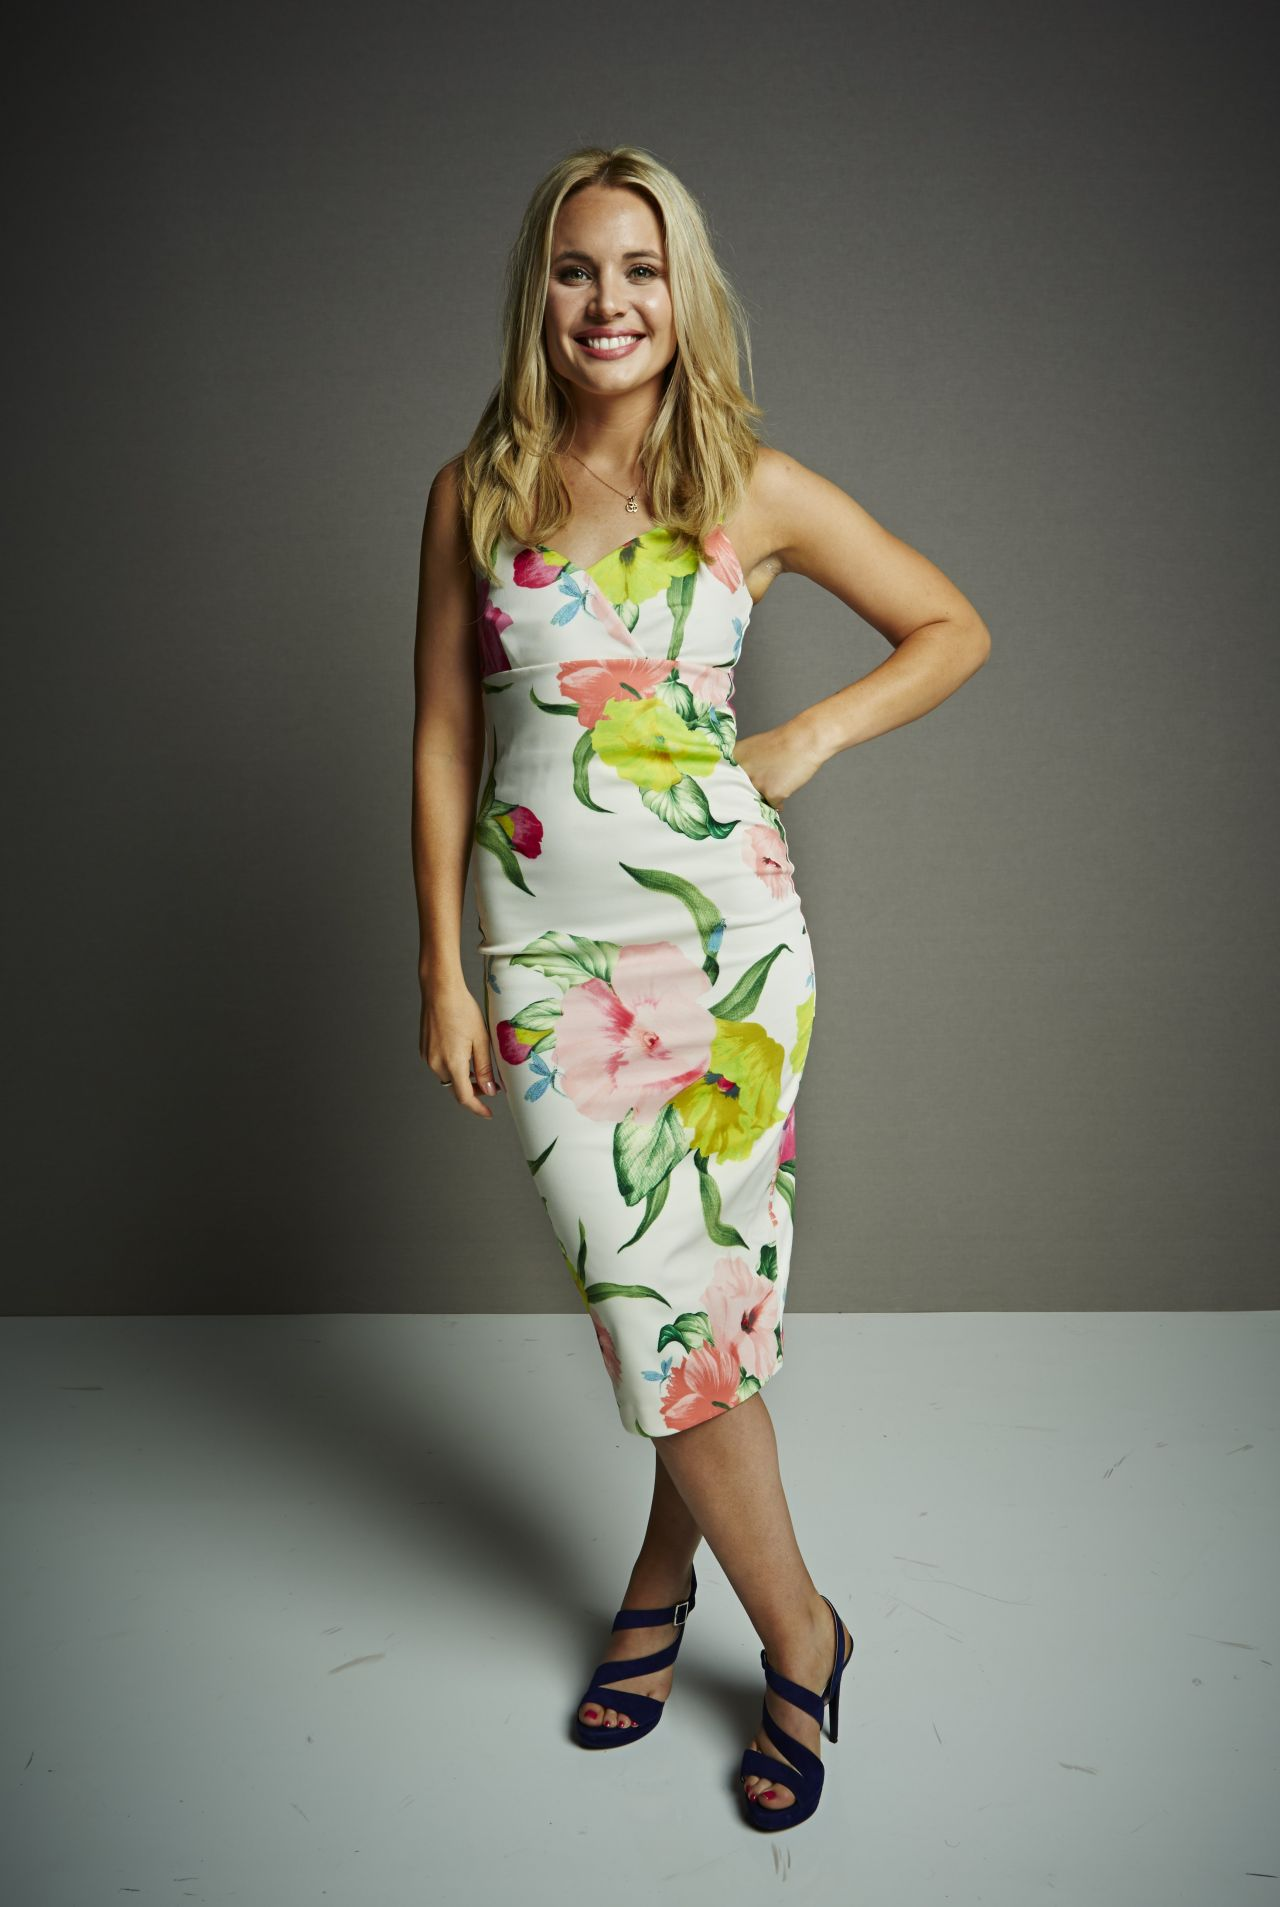 leah pipes - photo #9